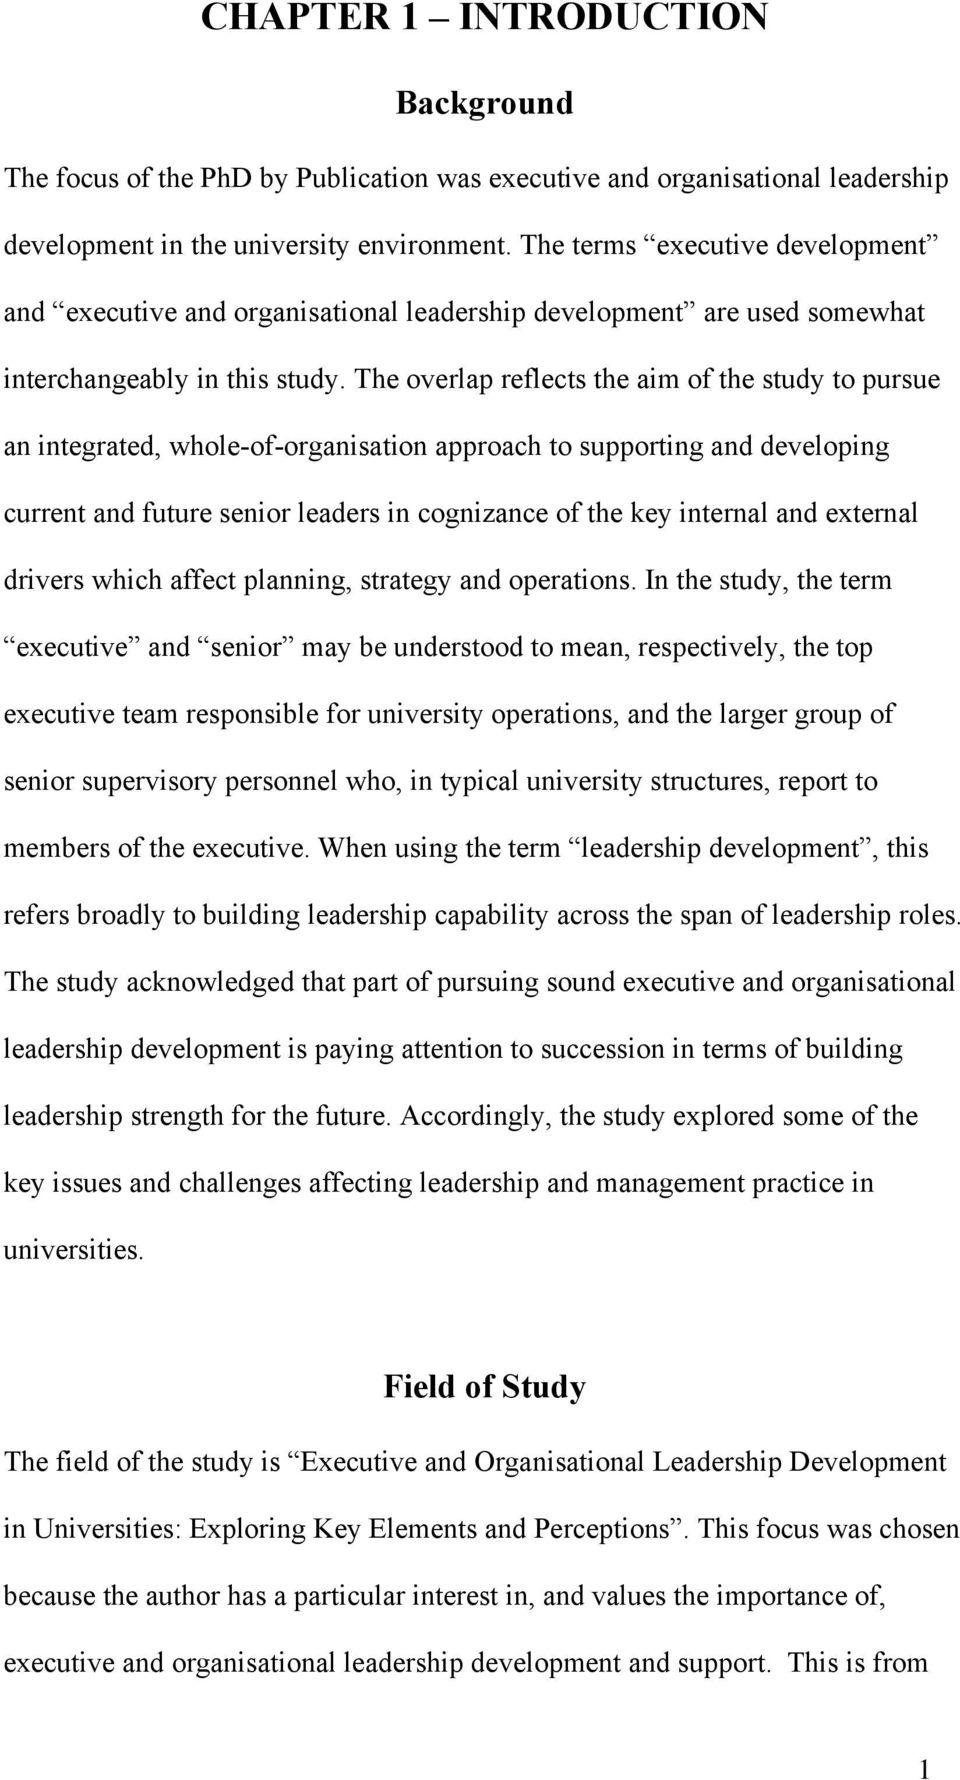 The overlap reflects the aim of the study to pursue an integrated, whole-of-organisation approach to supporting and developing current and future senior leaders in cognizance of the key internal and